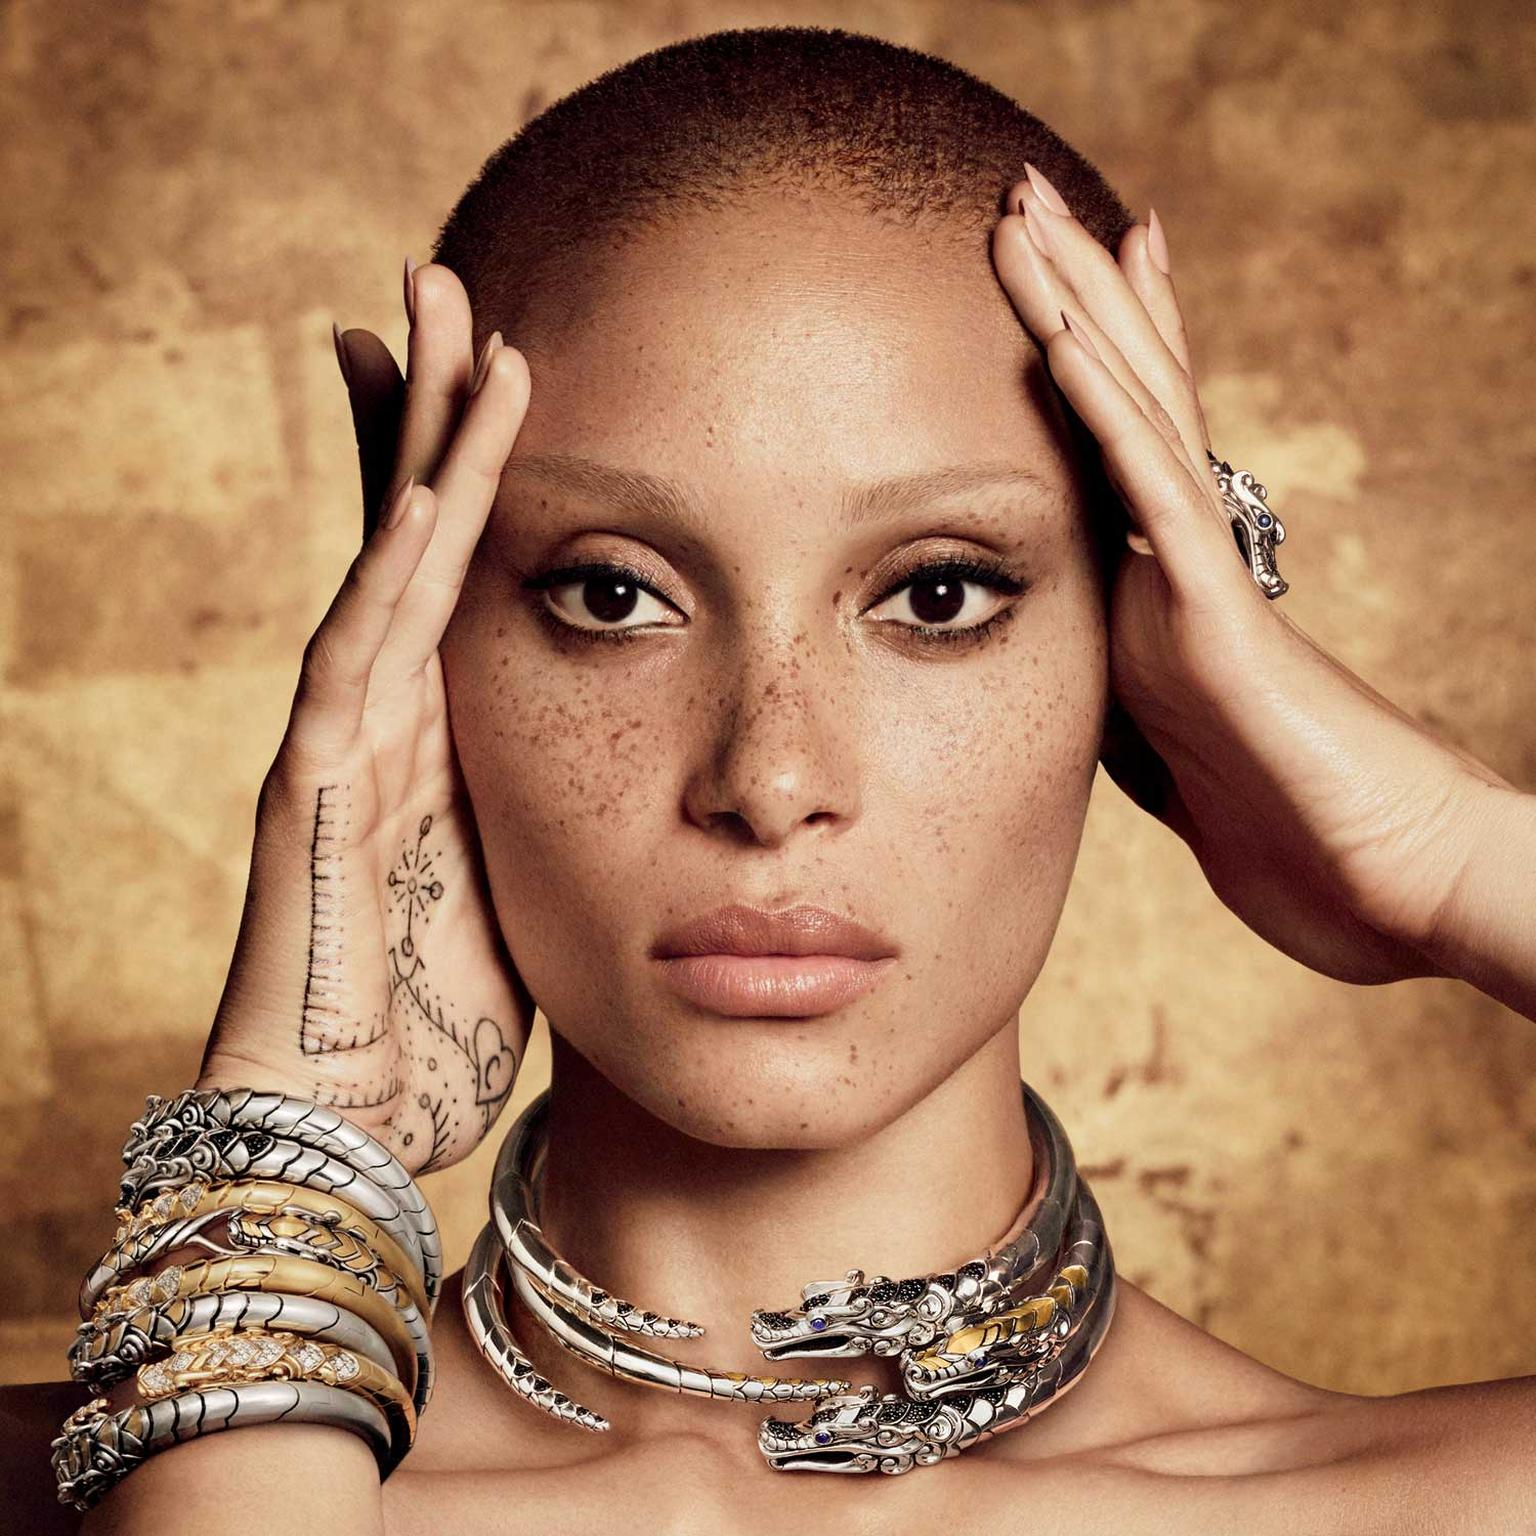 Adwoa Aboah stars in John Hardy's new Made for Legends ad campaign